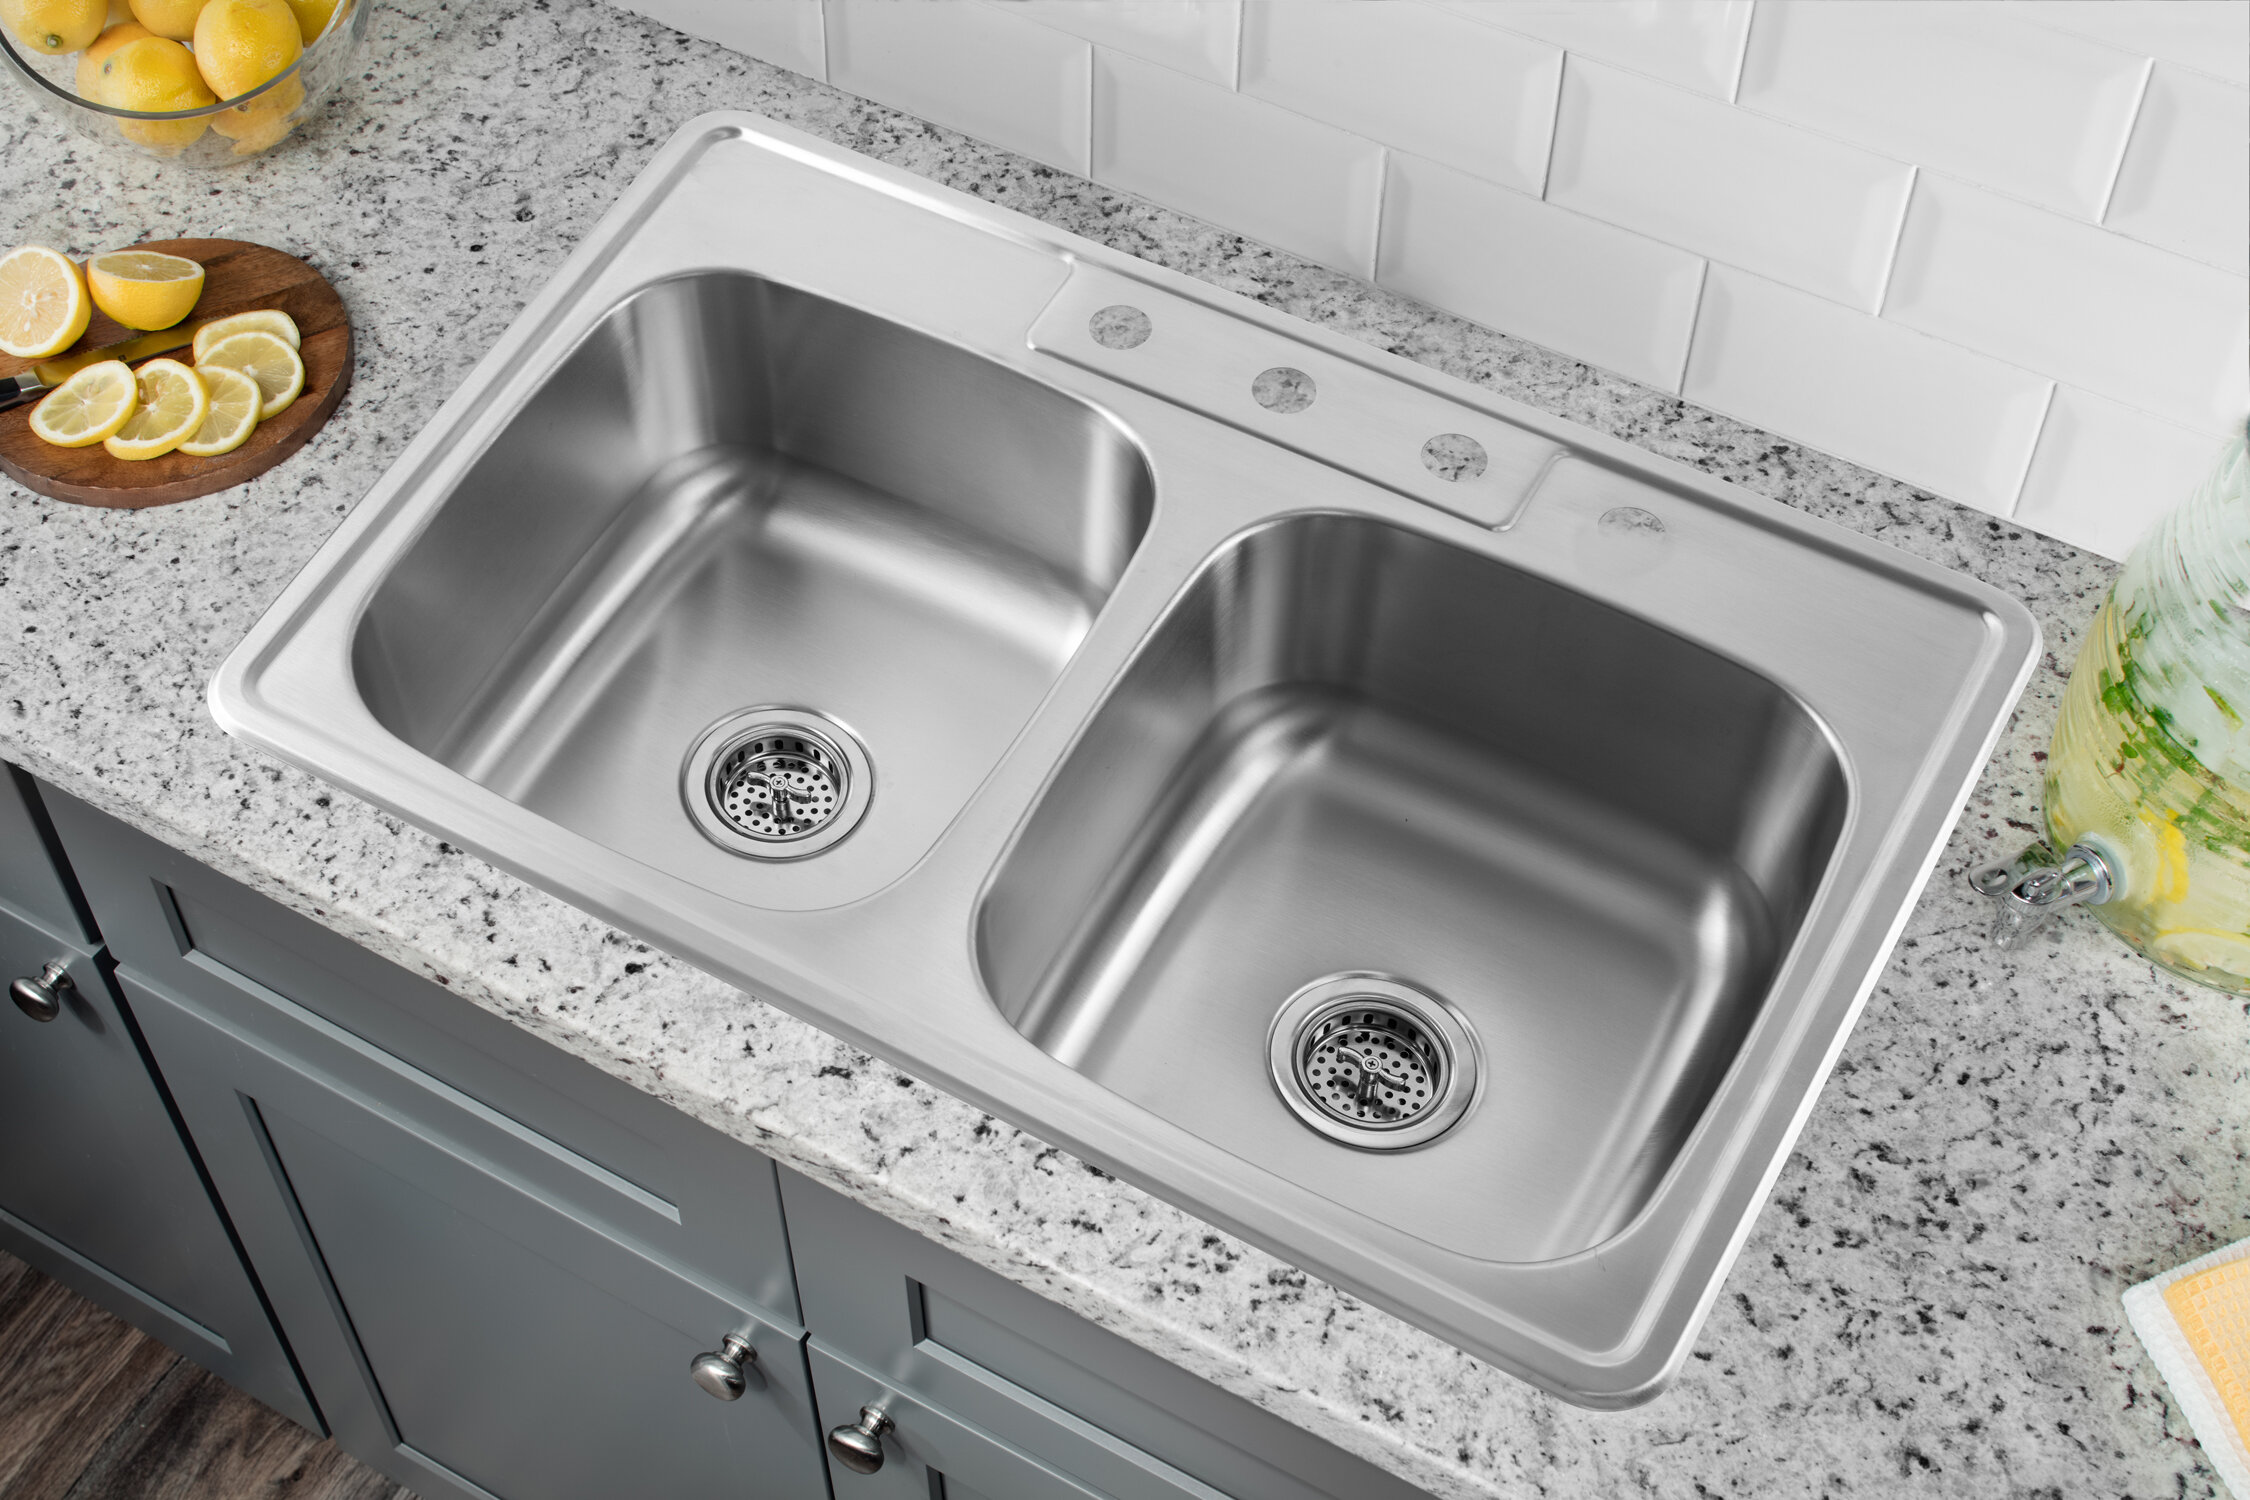 Prime 33 L X 22 W Stainless Steel Drop In Double Bowl Kitchen Sink Complete Home Design Collection Lindsey Bellcom